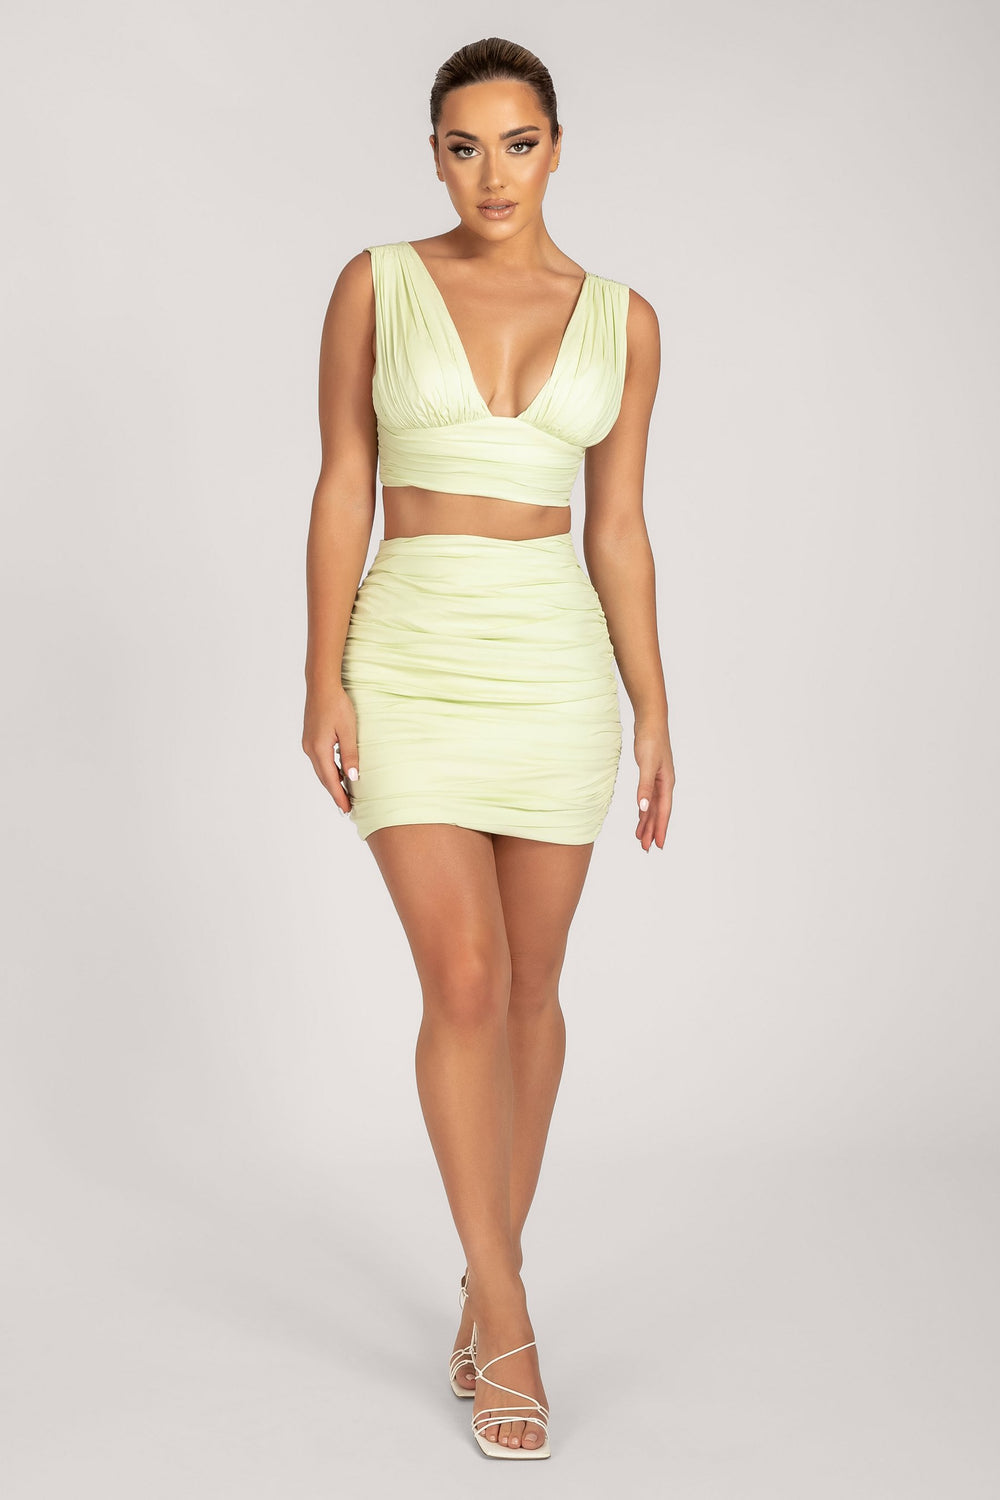 Trinny Triangle Plunge Crop Top - Celery